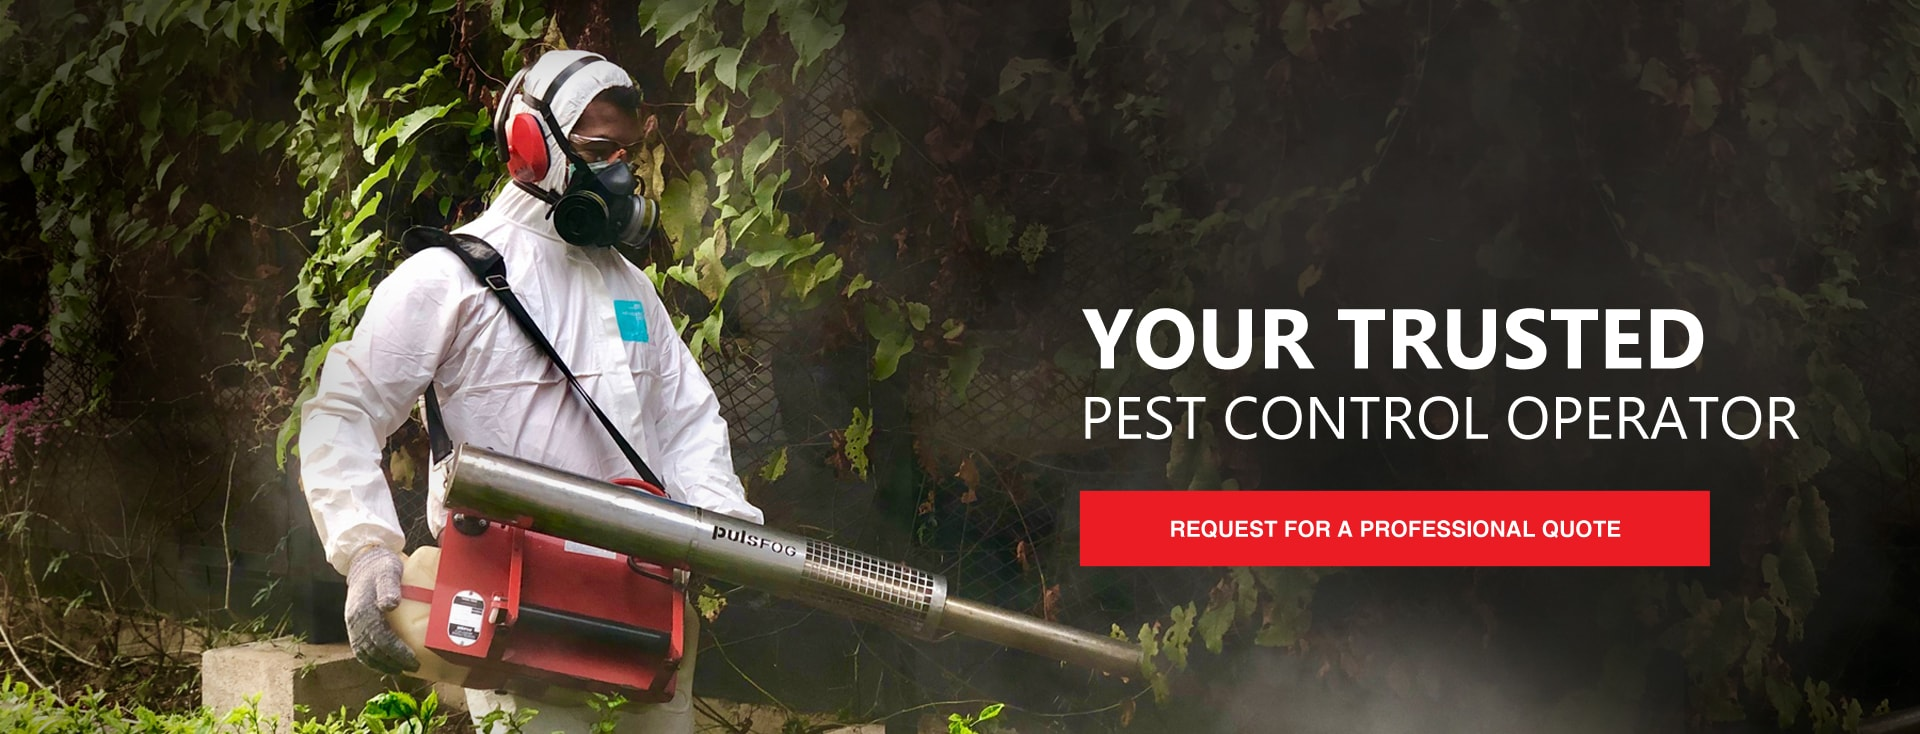 Your trusted pest control company